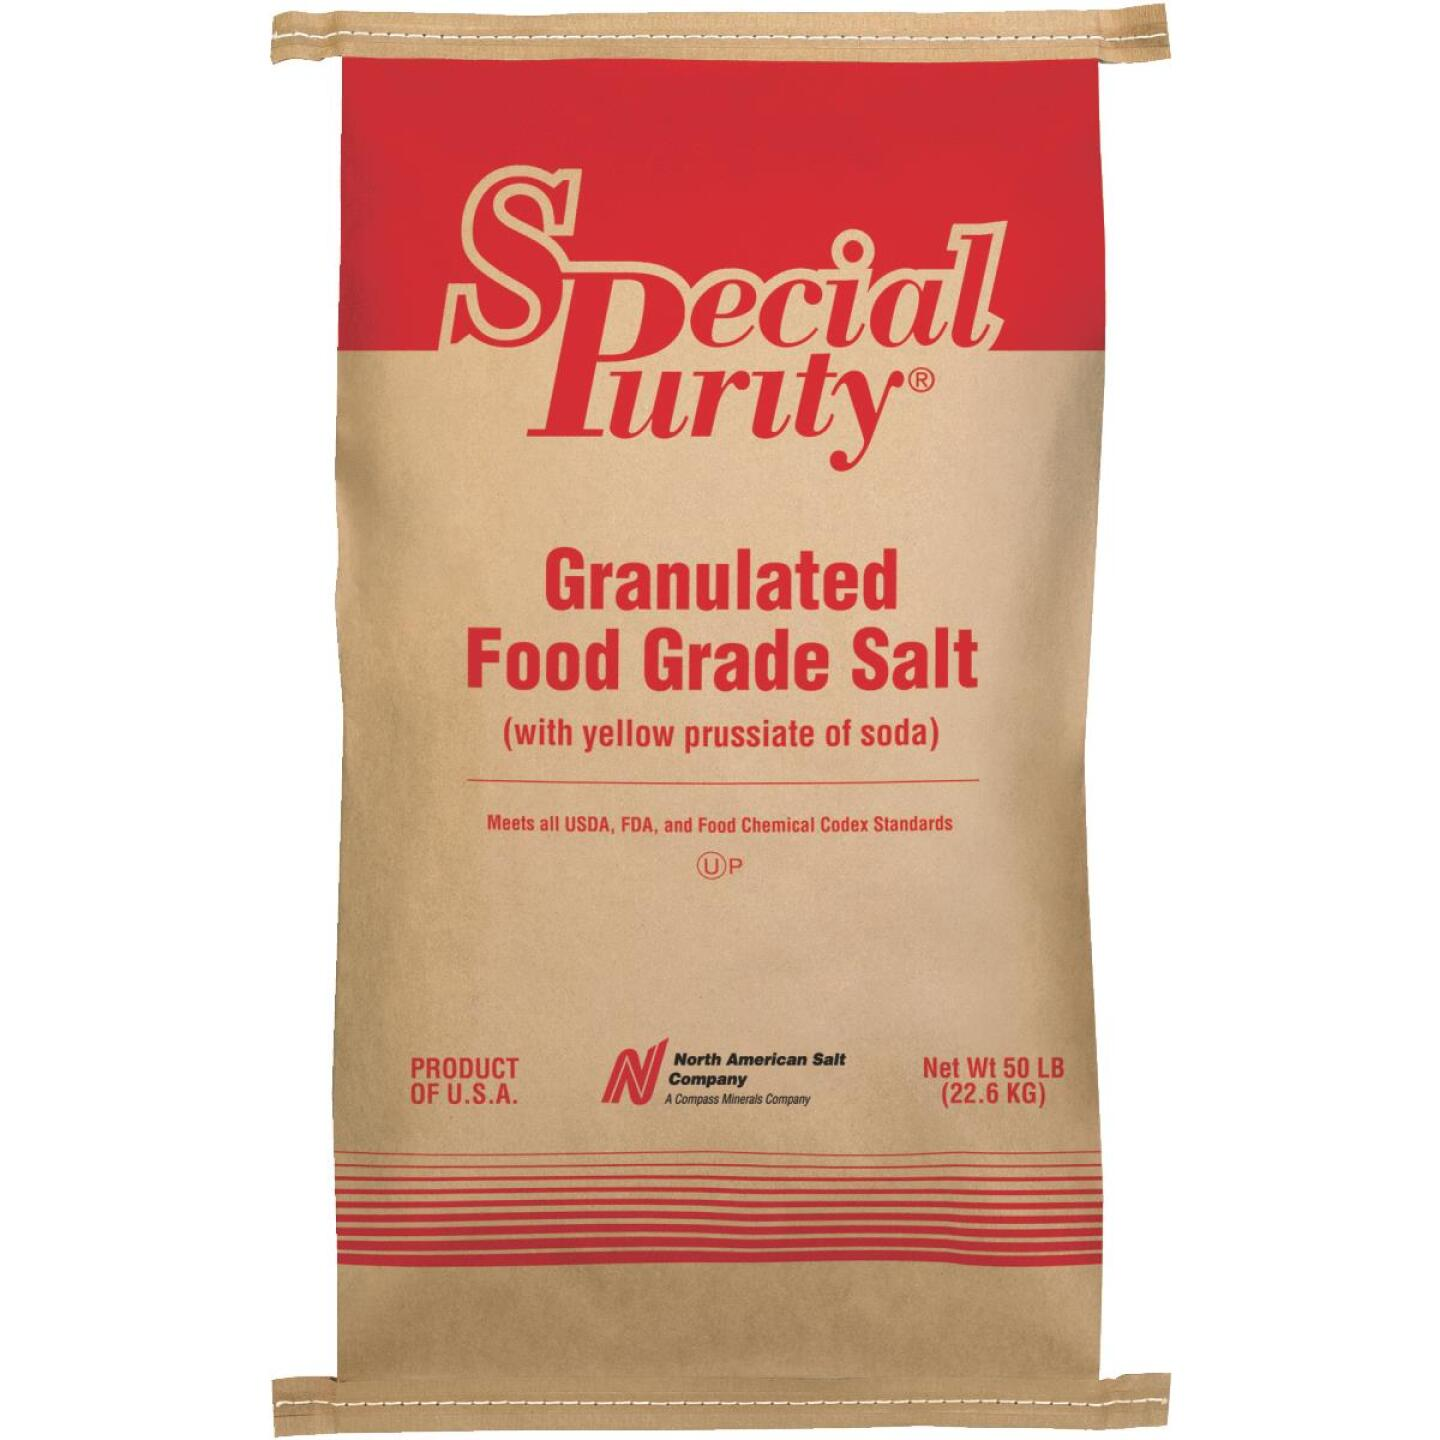 Special Purity 50 Lb. 99.9% Purity Food Grade Salt Image 1